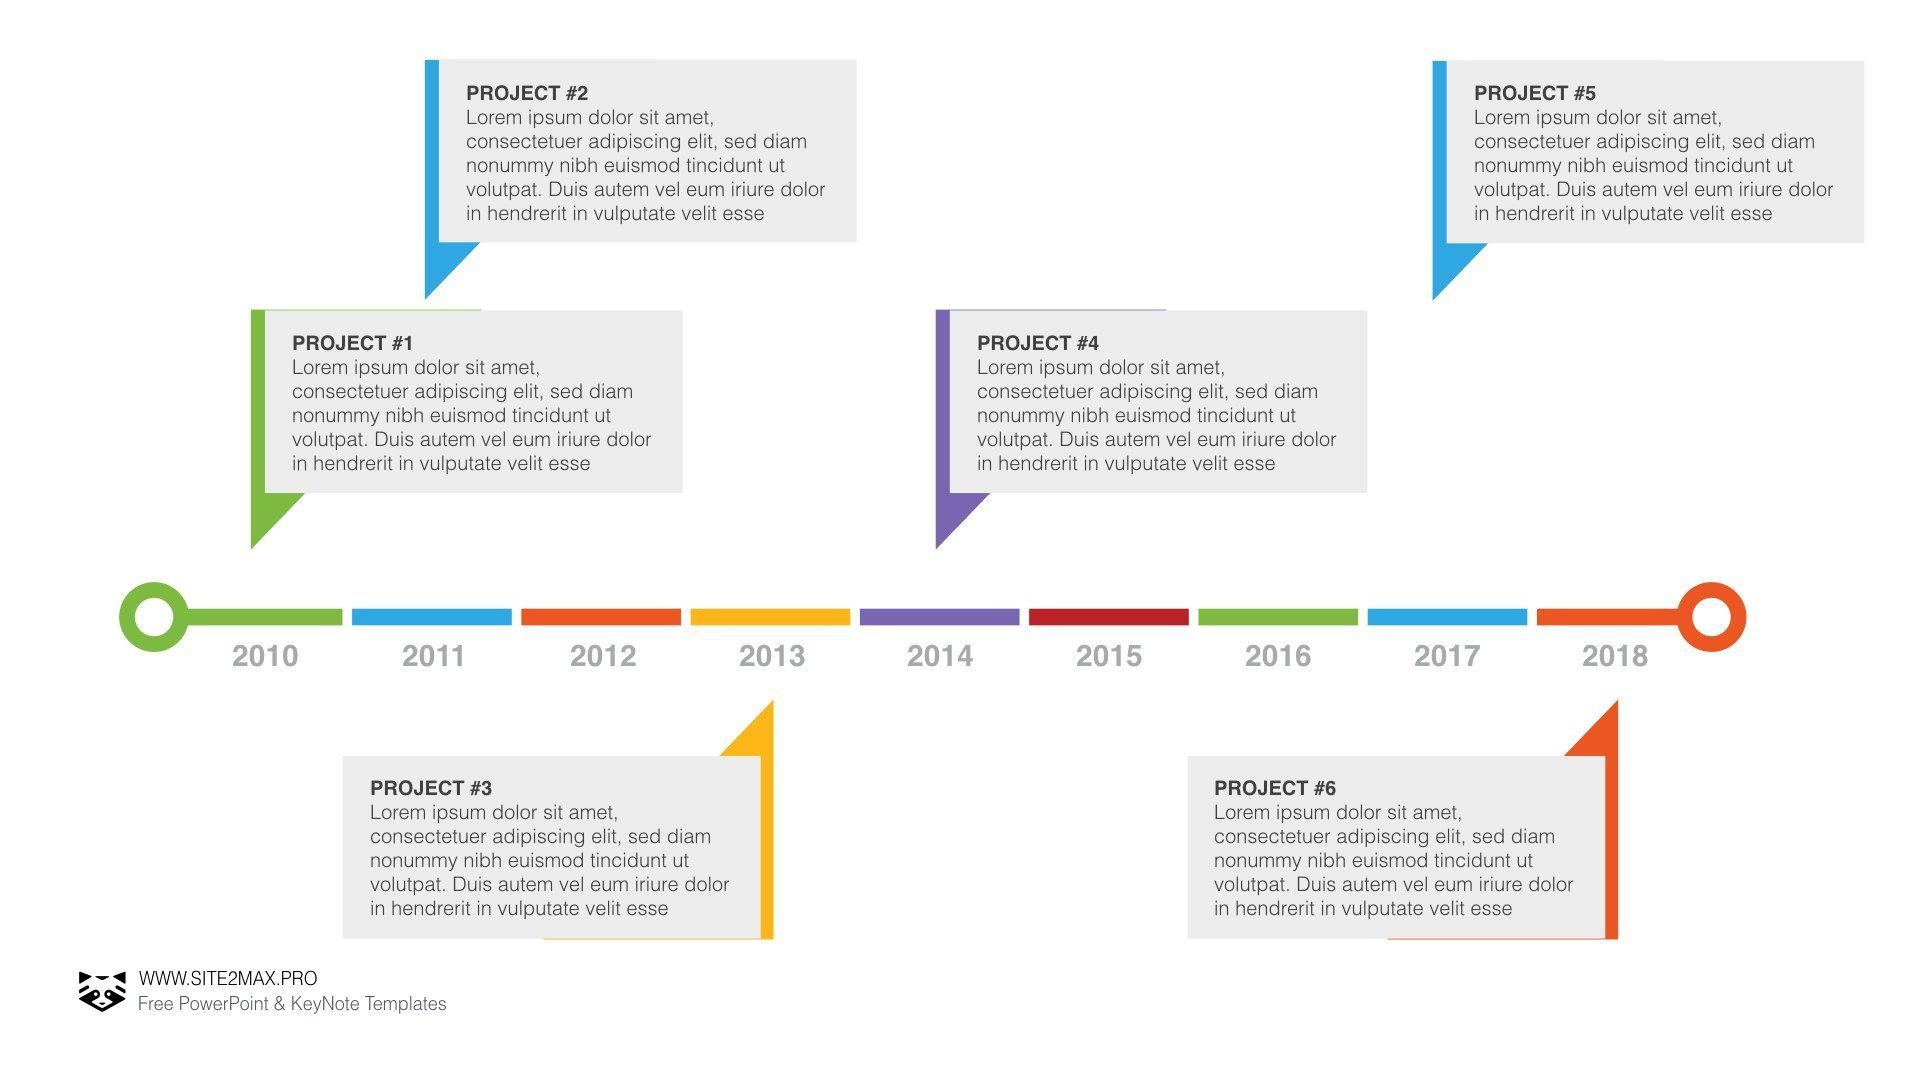 004 Exceptional Timeline Template Ppt Free Download Image  Infographic Powerpoint ProjectFull